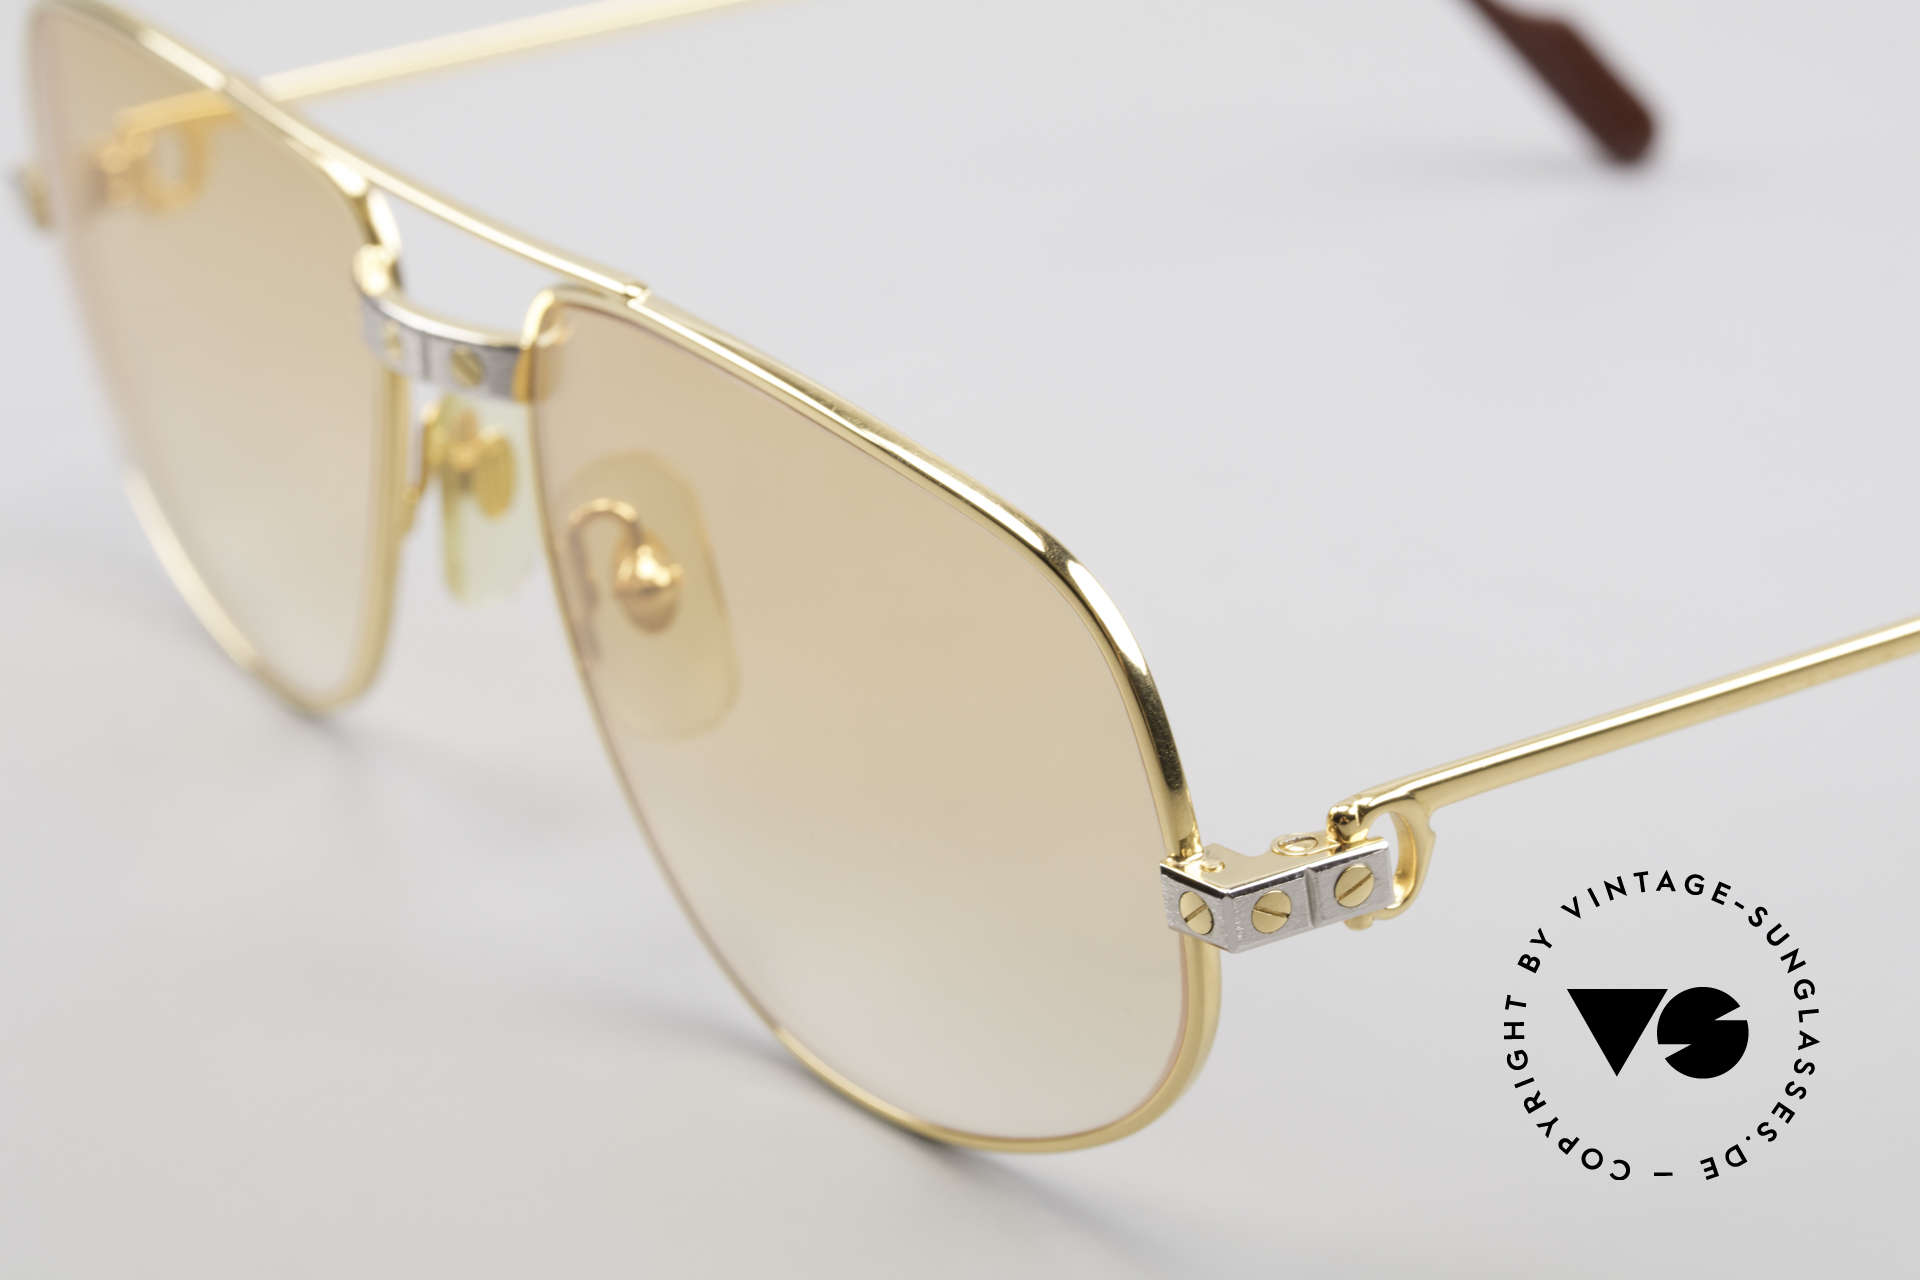 Cartier Romance Santos - L Luxury Vintage Sunglasses, 22ct gold-plated frame (like all vintage Cartier originals), Made for Men